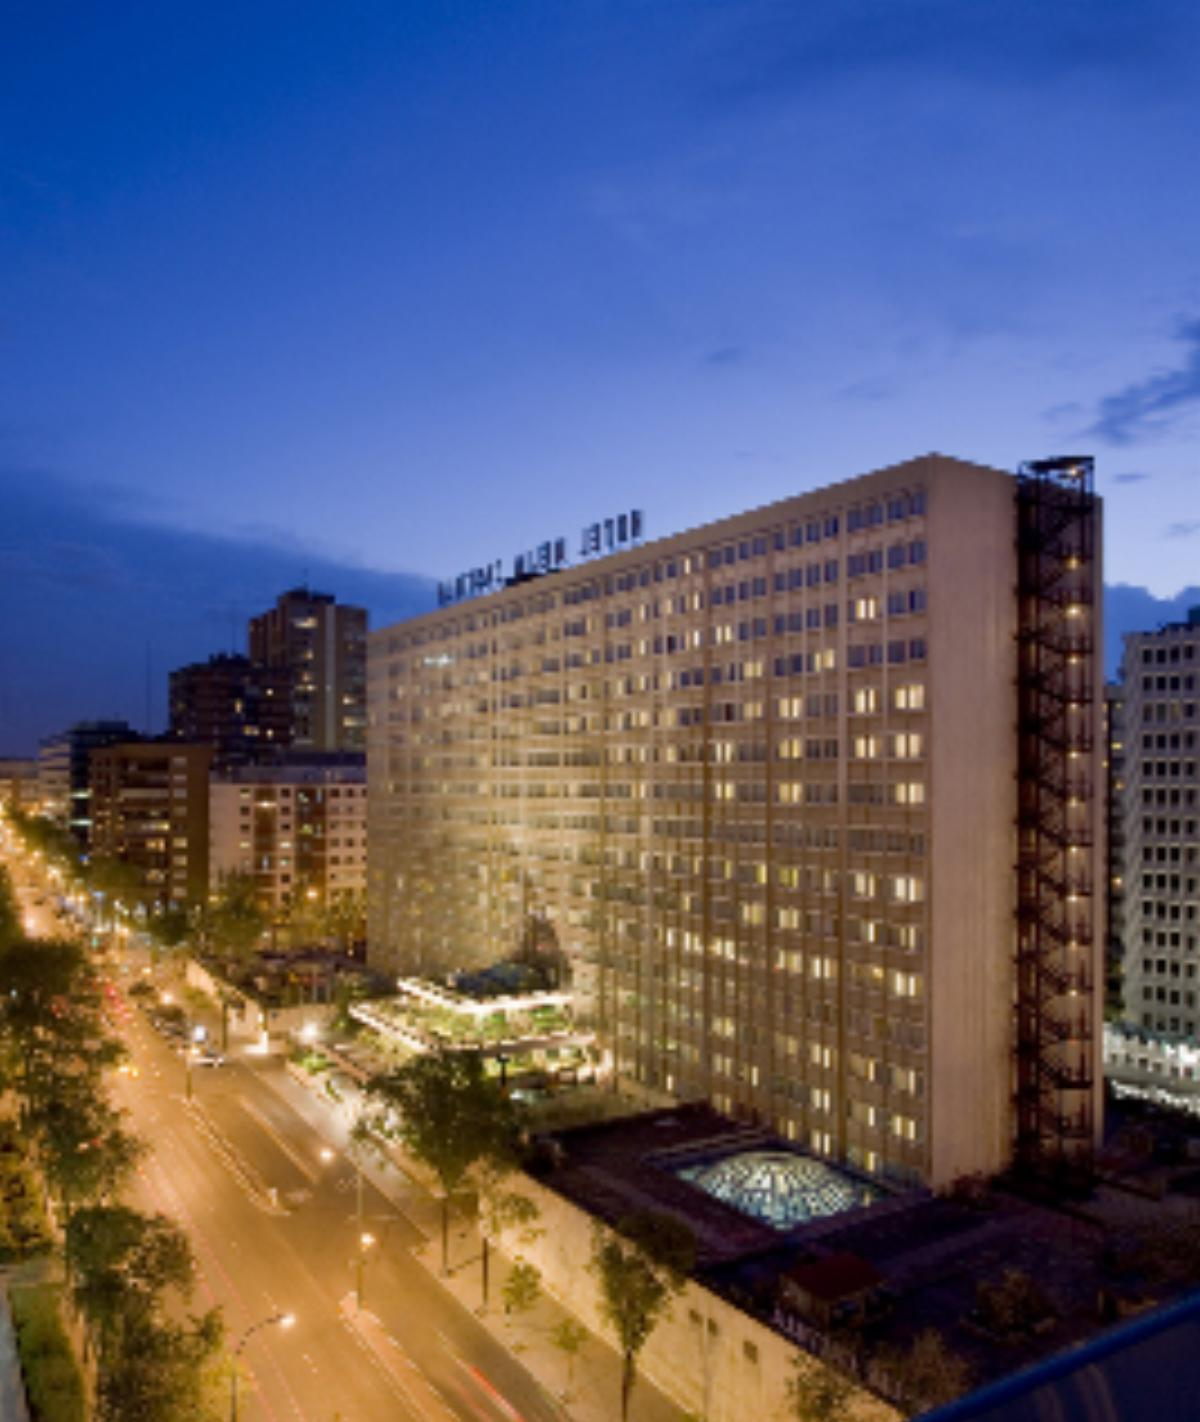 Melia Castilla Hotel Madrid Spain